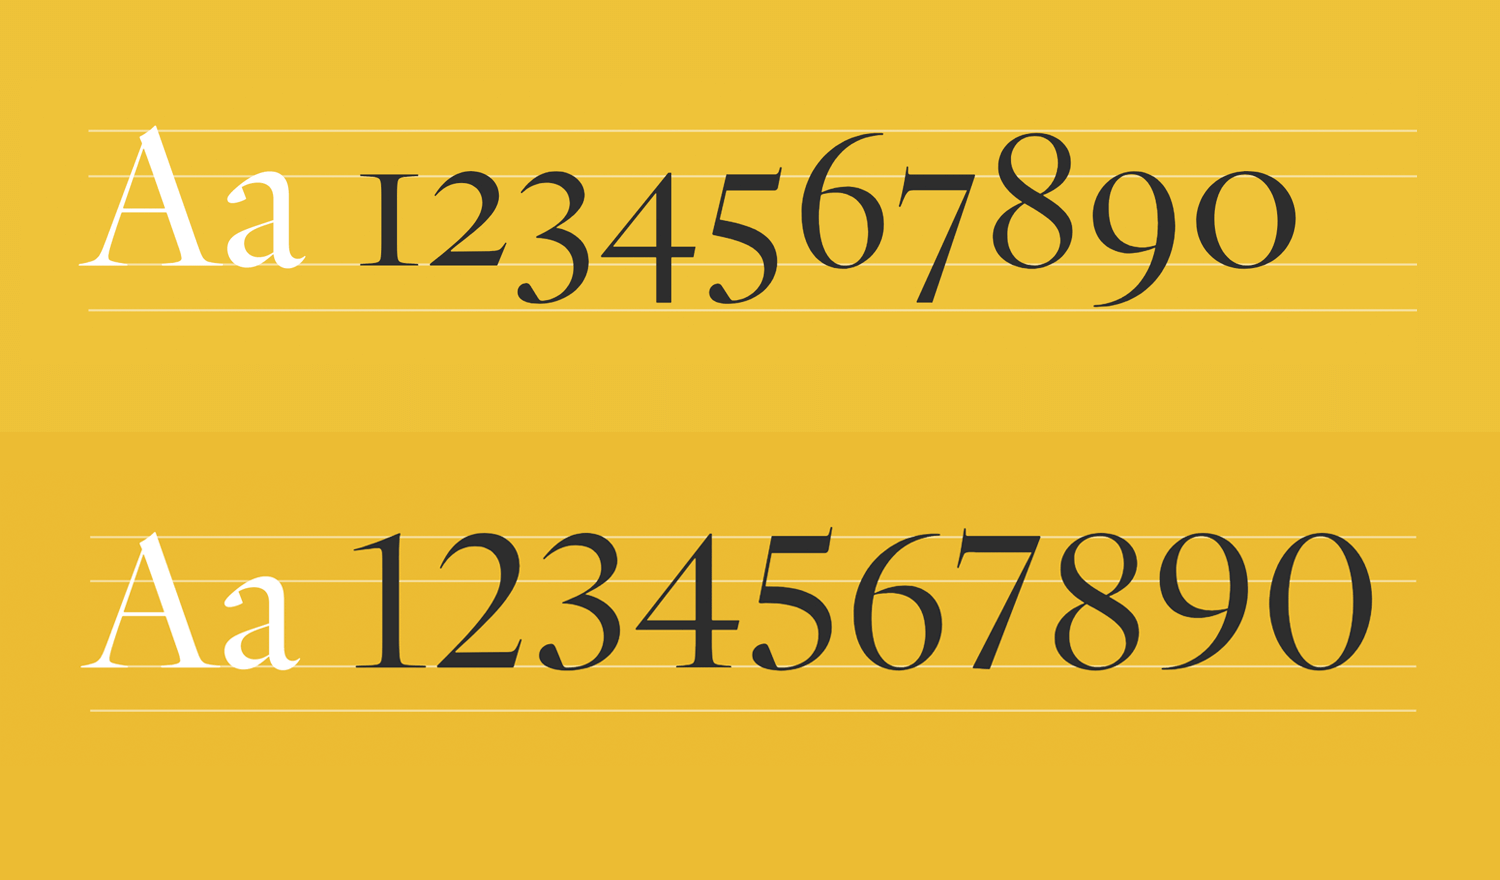 typefaces for both text and numbers